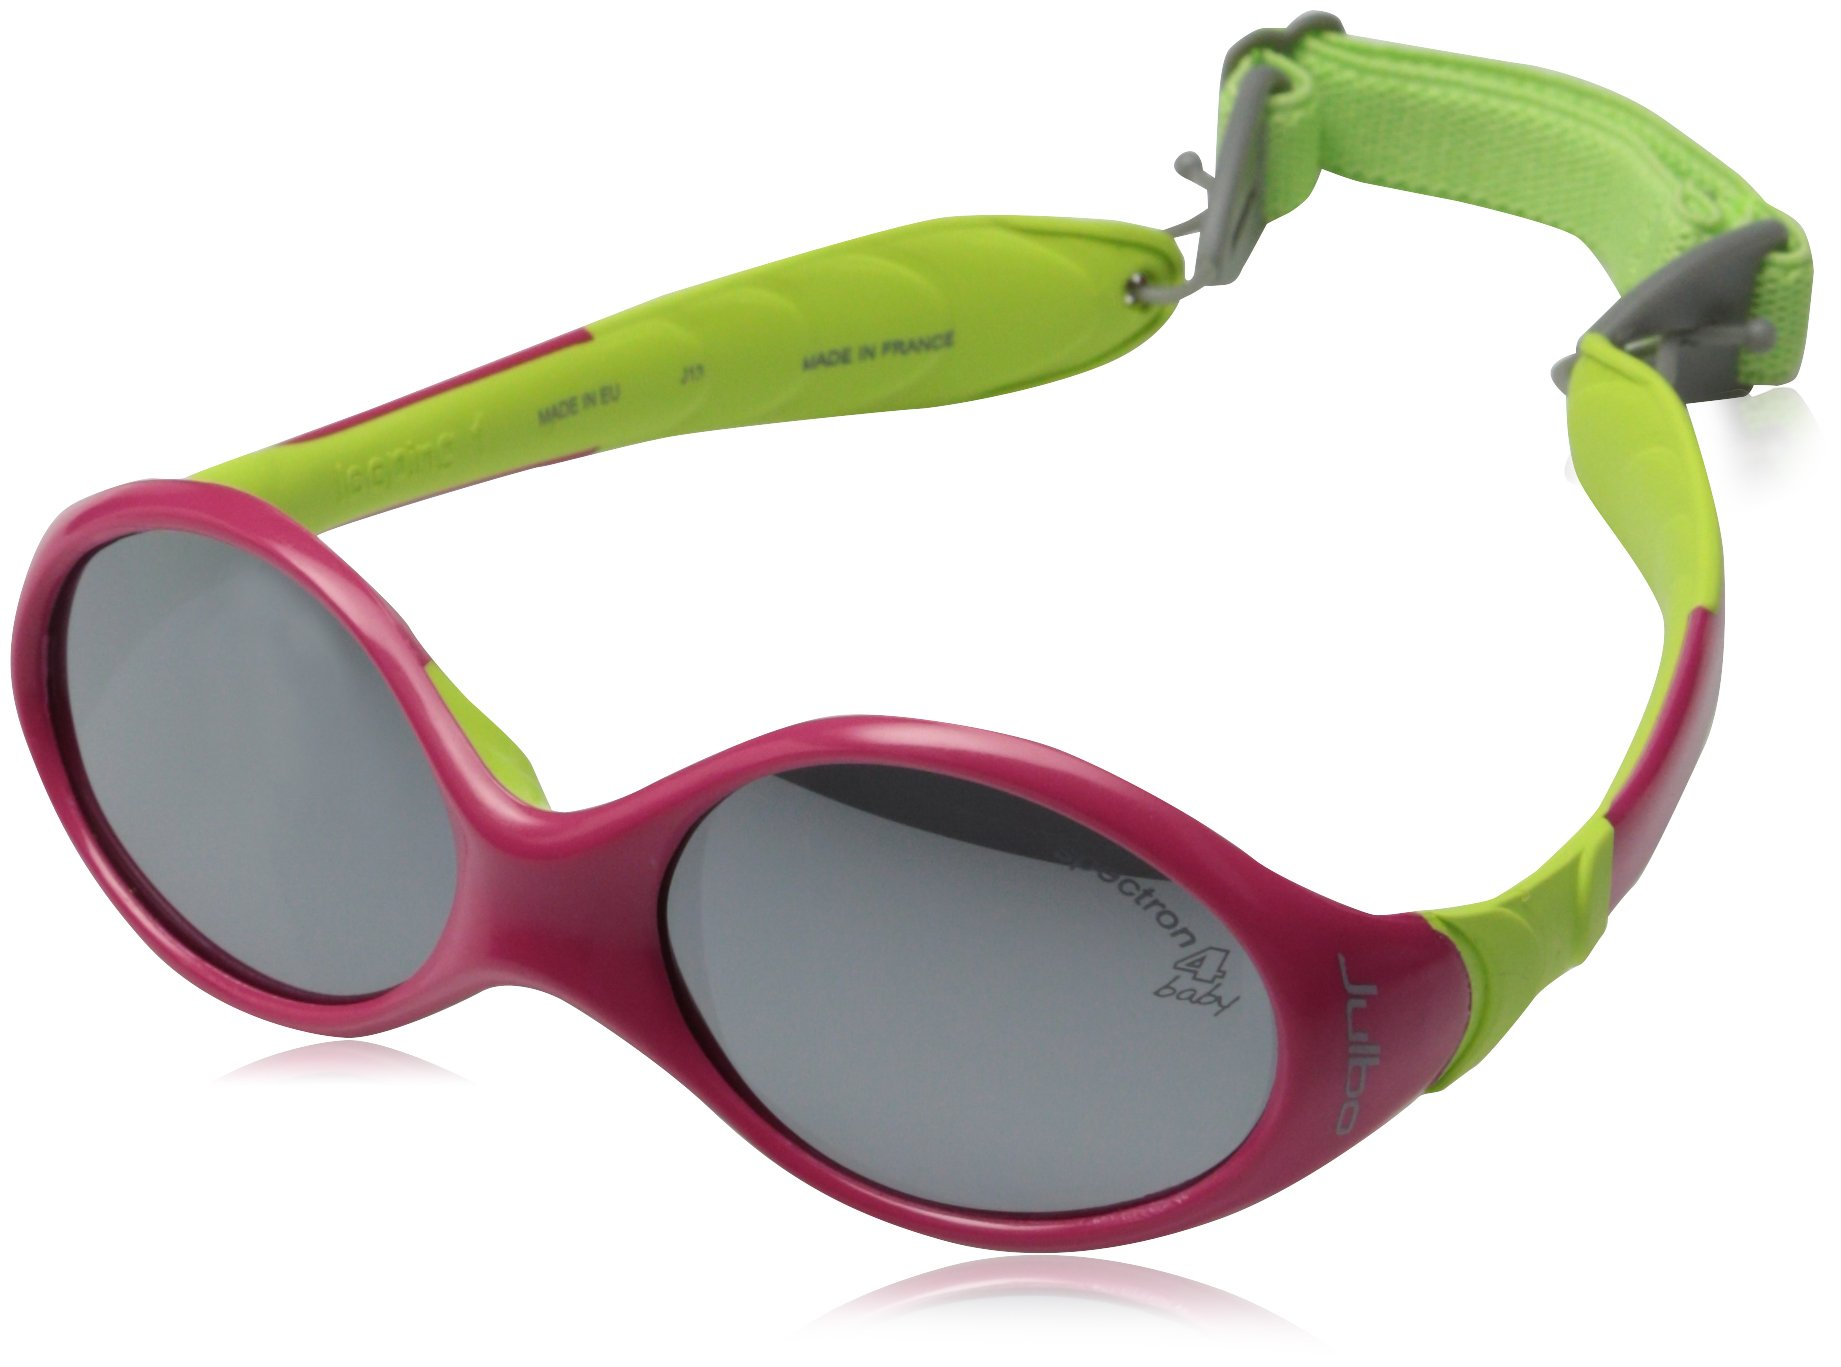 Julbo Looping I Baby Sunglasses, Spectron 4 Baby Lens, Fuschia/Lime Green, 0-18 months